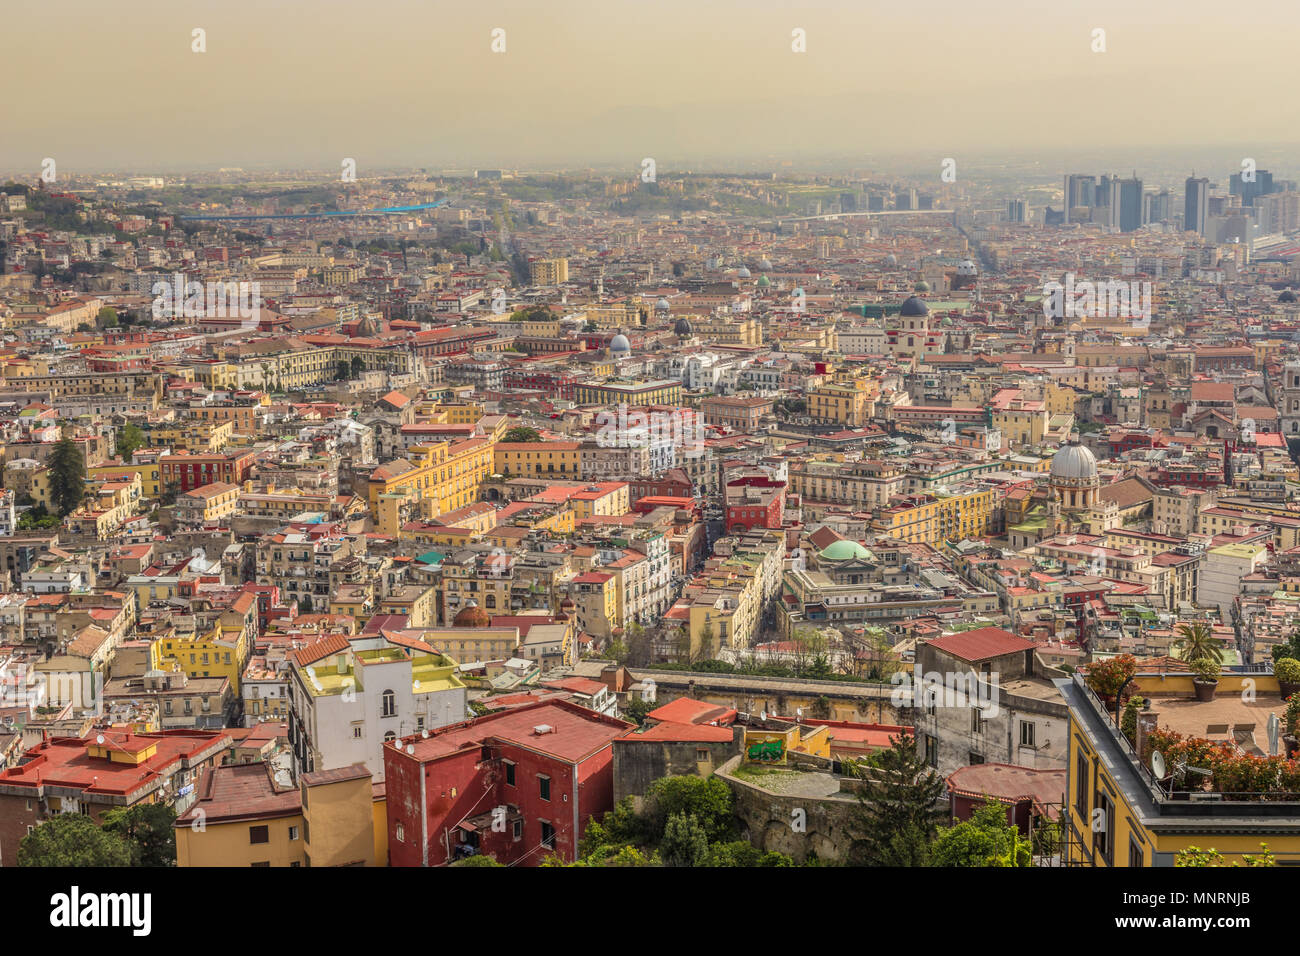 City view of Naples Italy - Stock Image